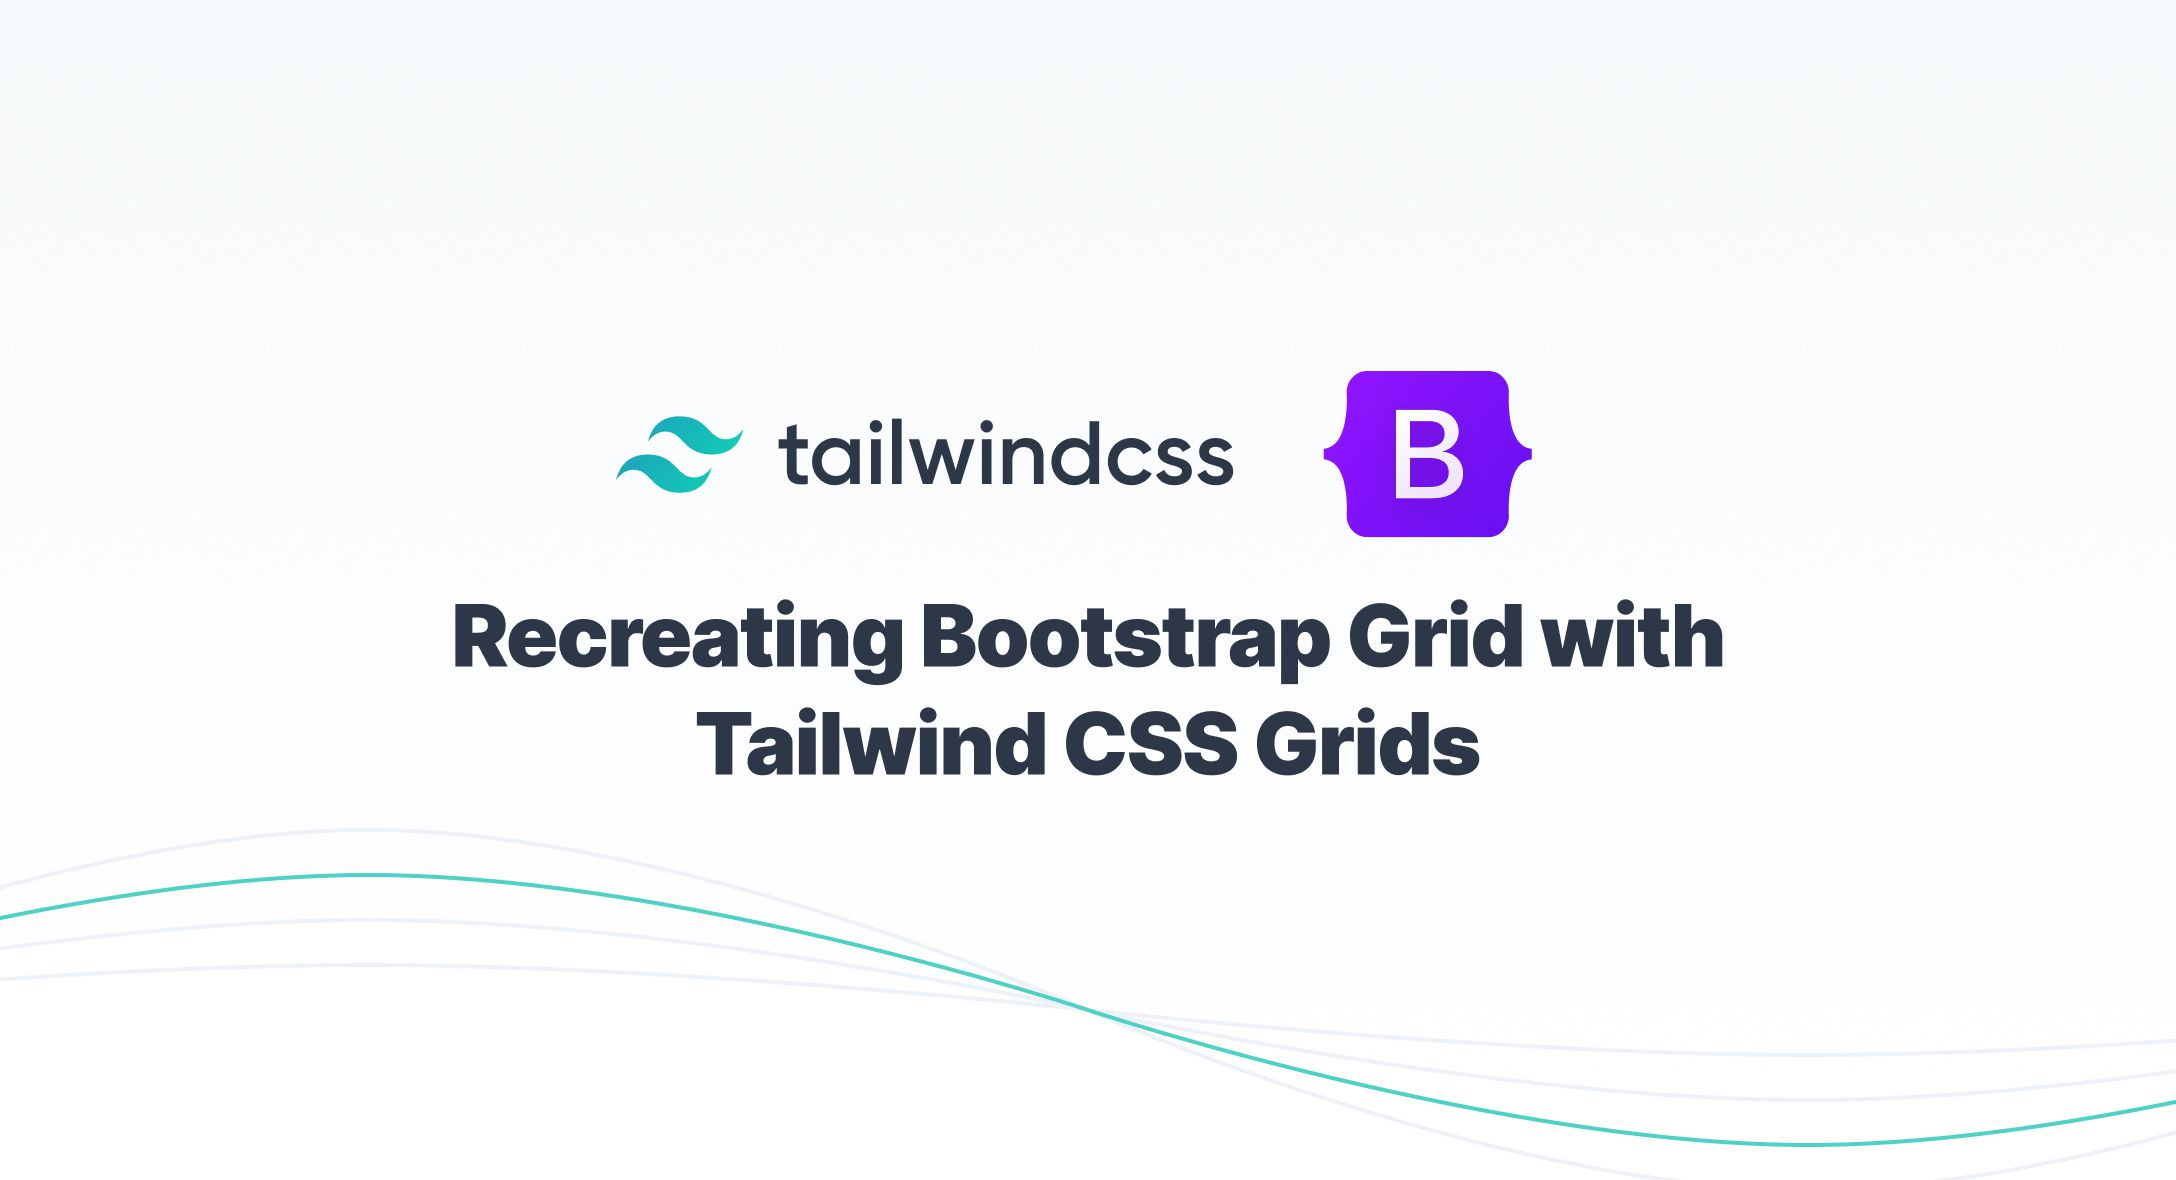 Recreating Bootstrap Grid with Tailwind CSS Grids